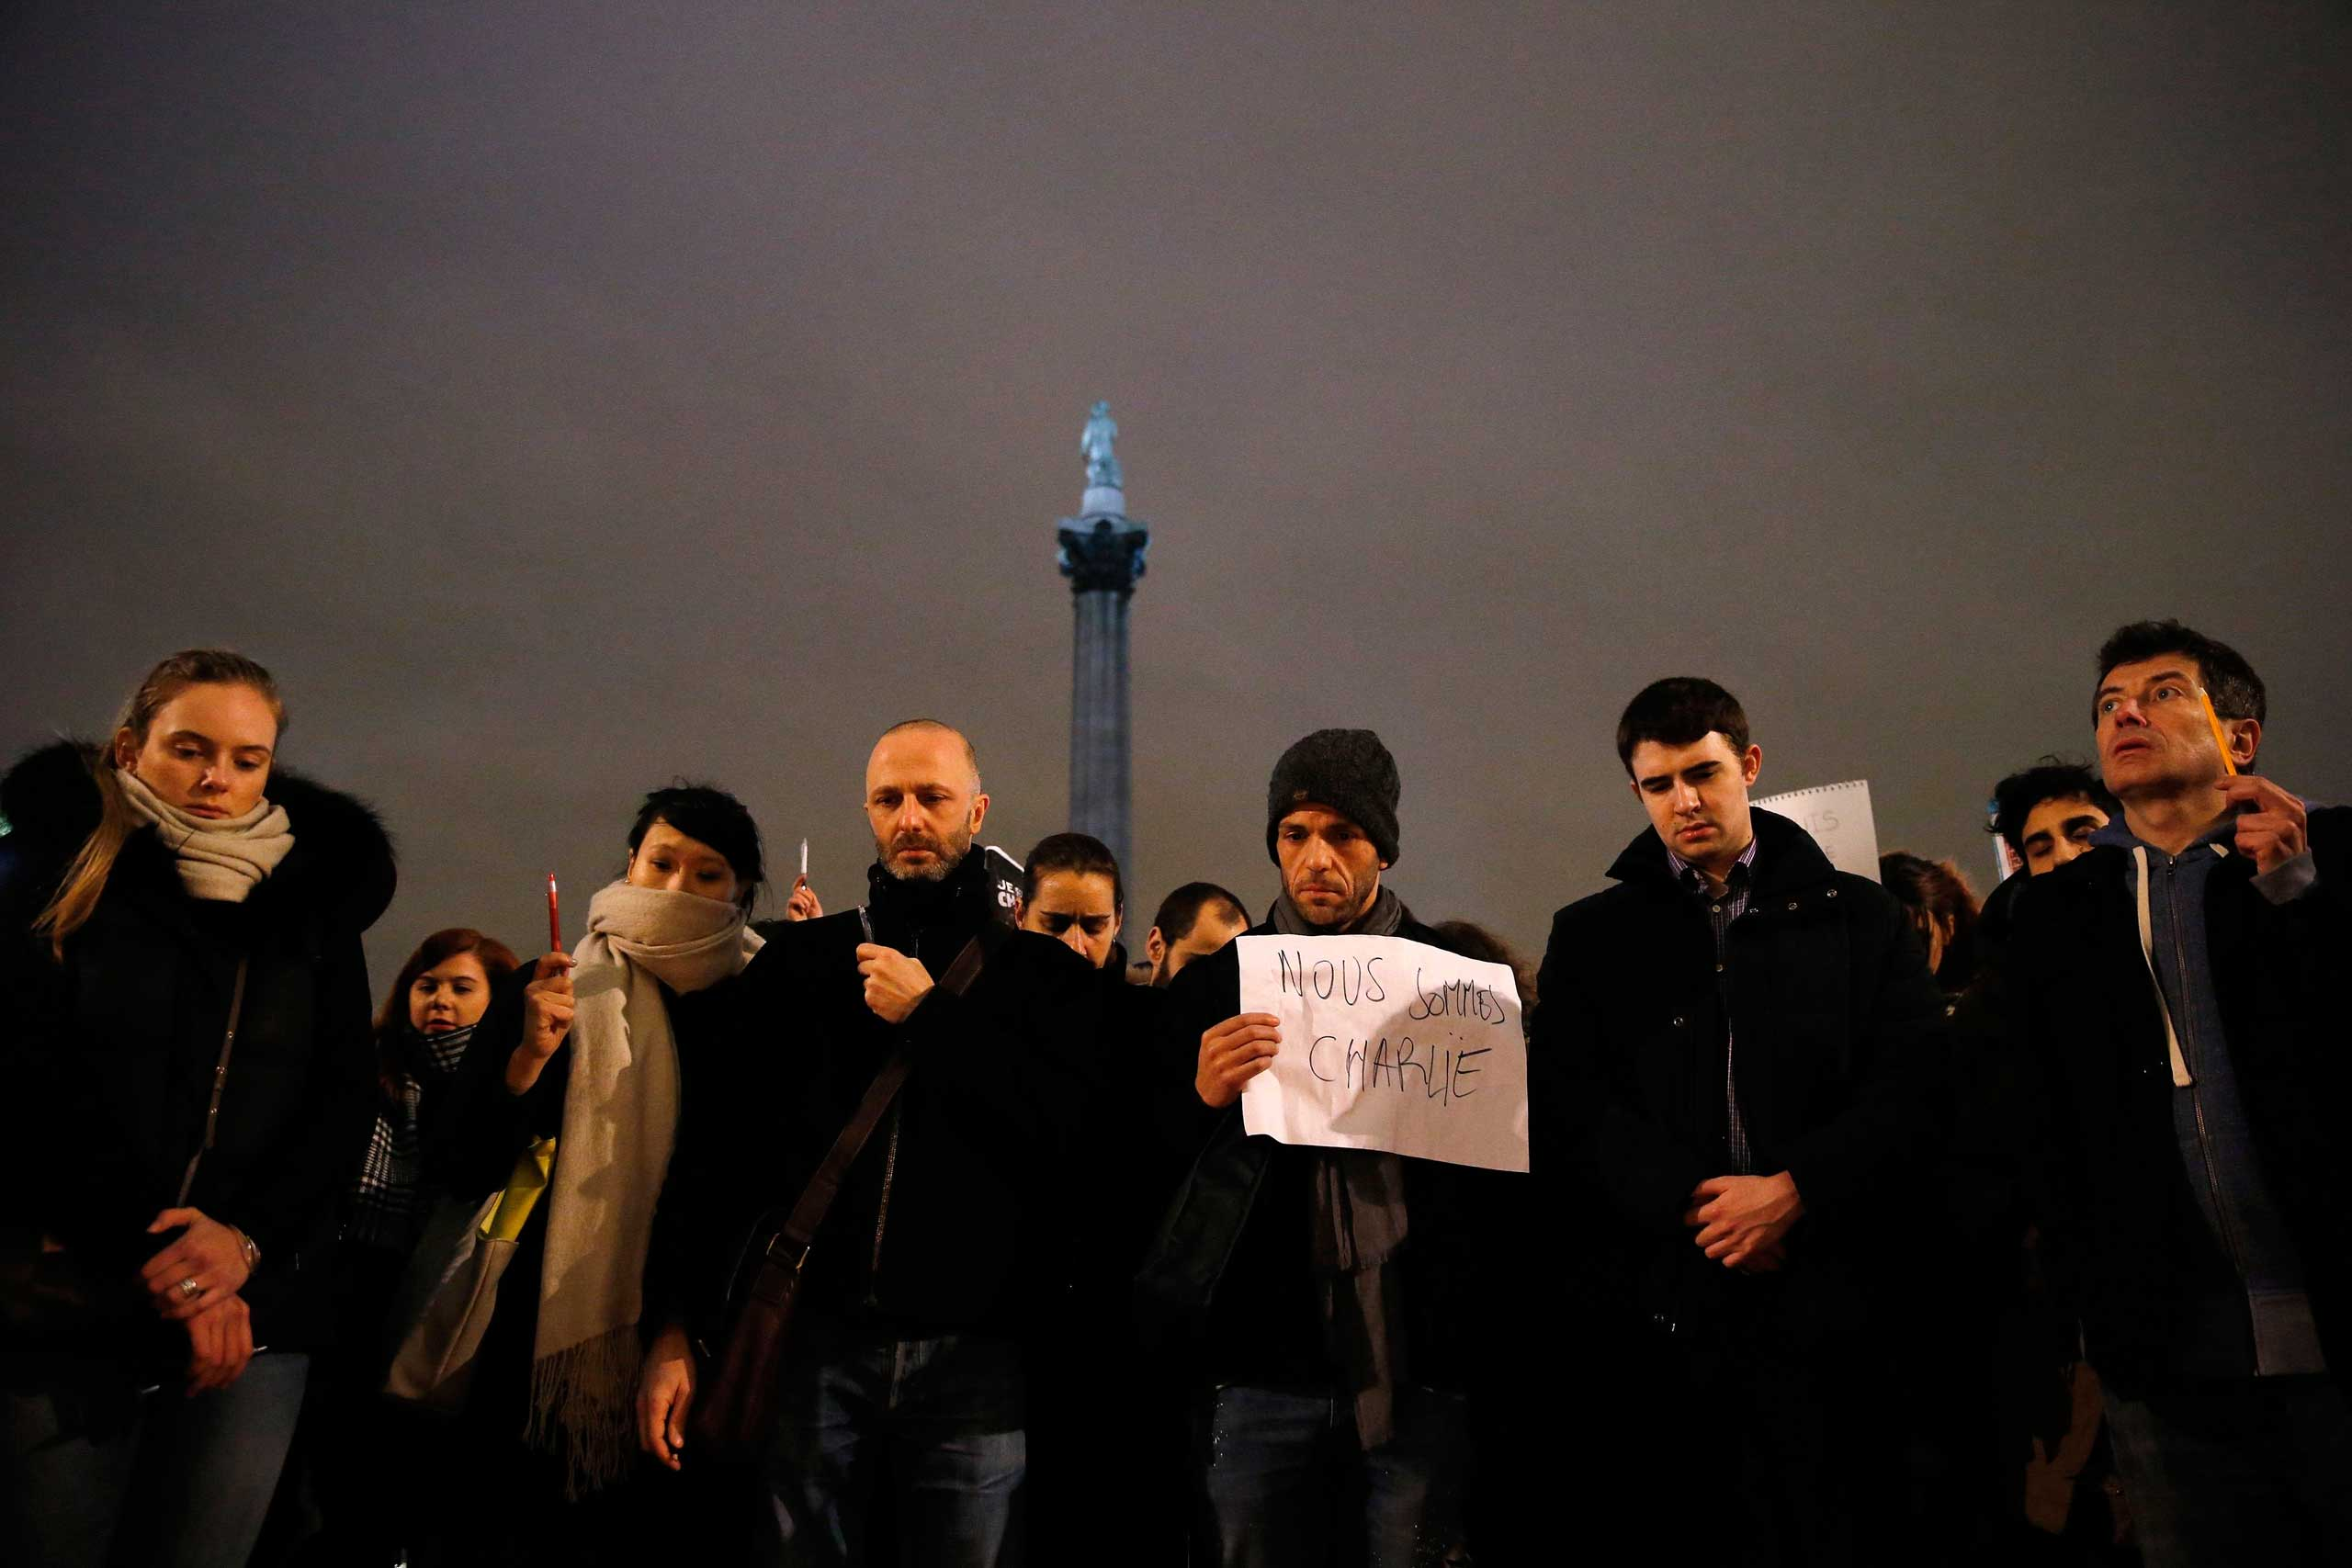 London Crowds Show Solidarity With Charlie Hebdo Time